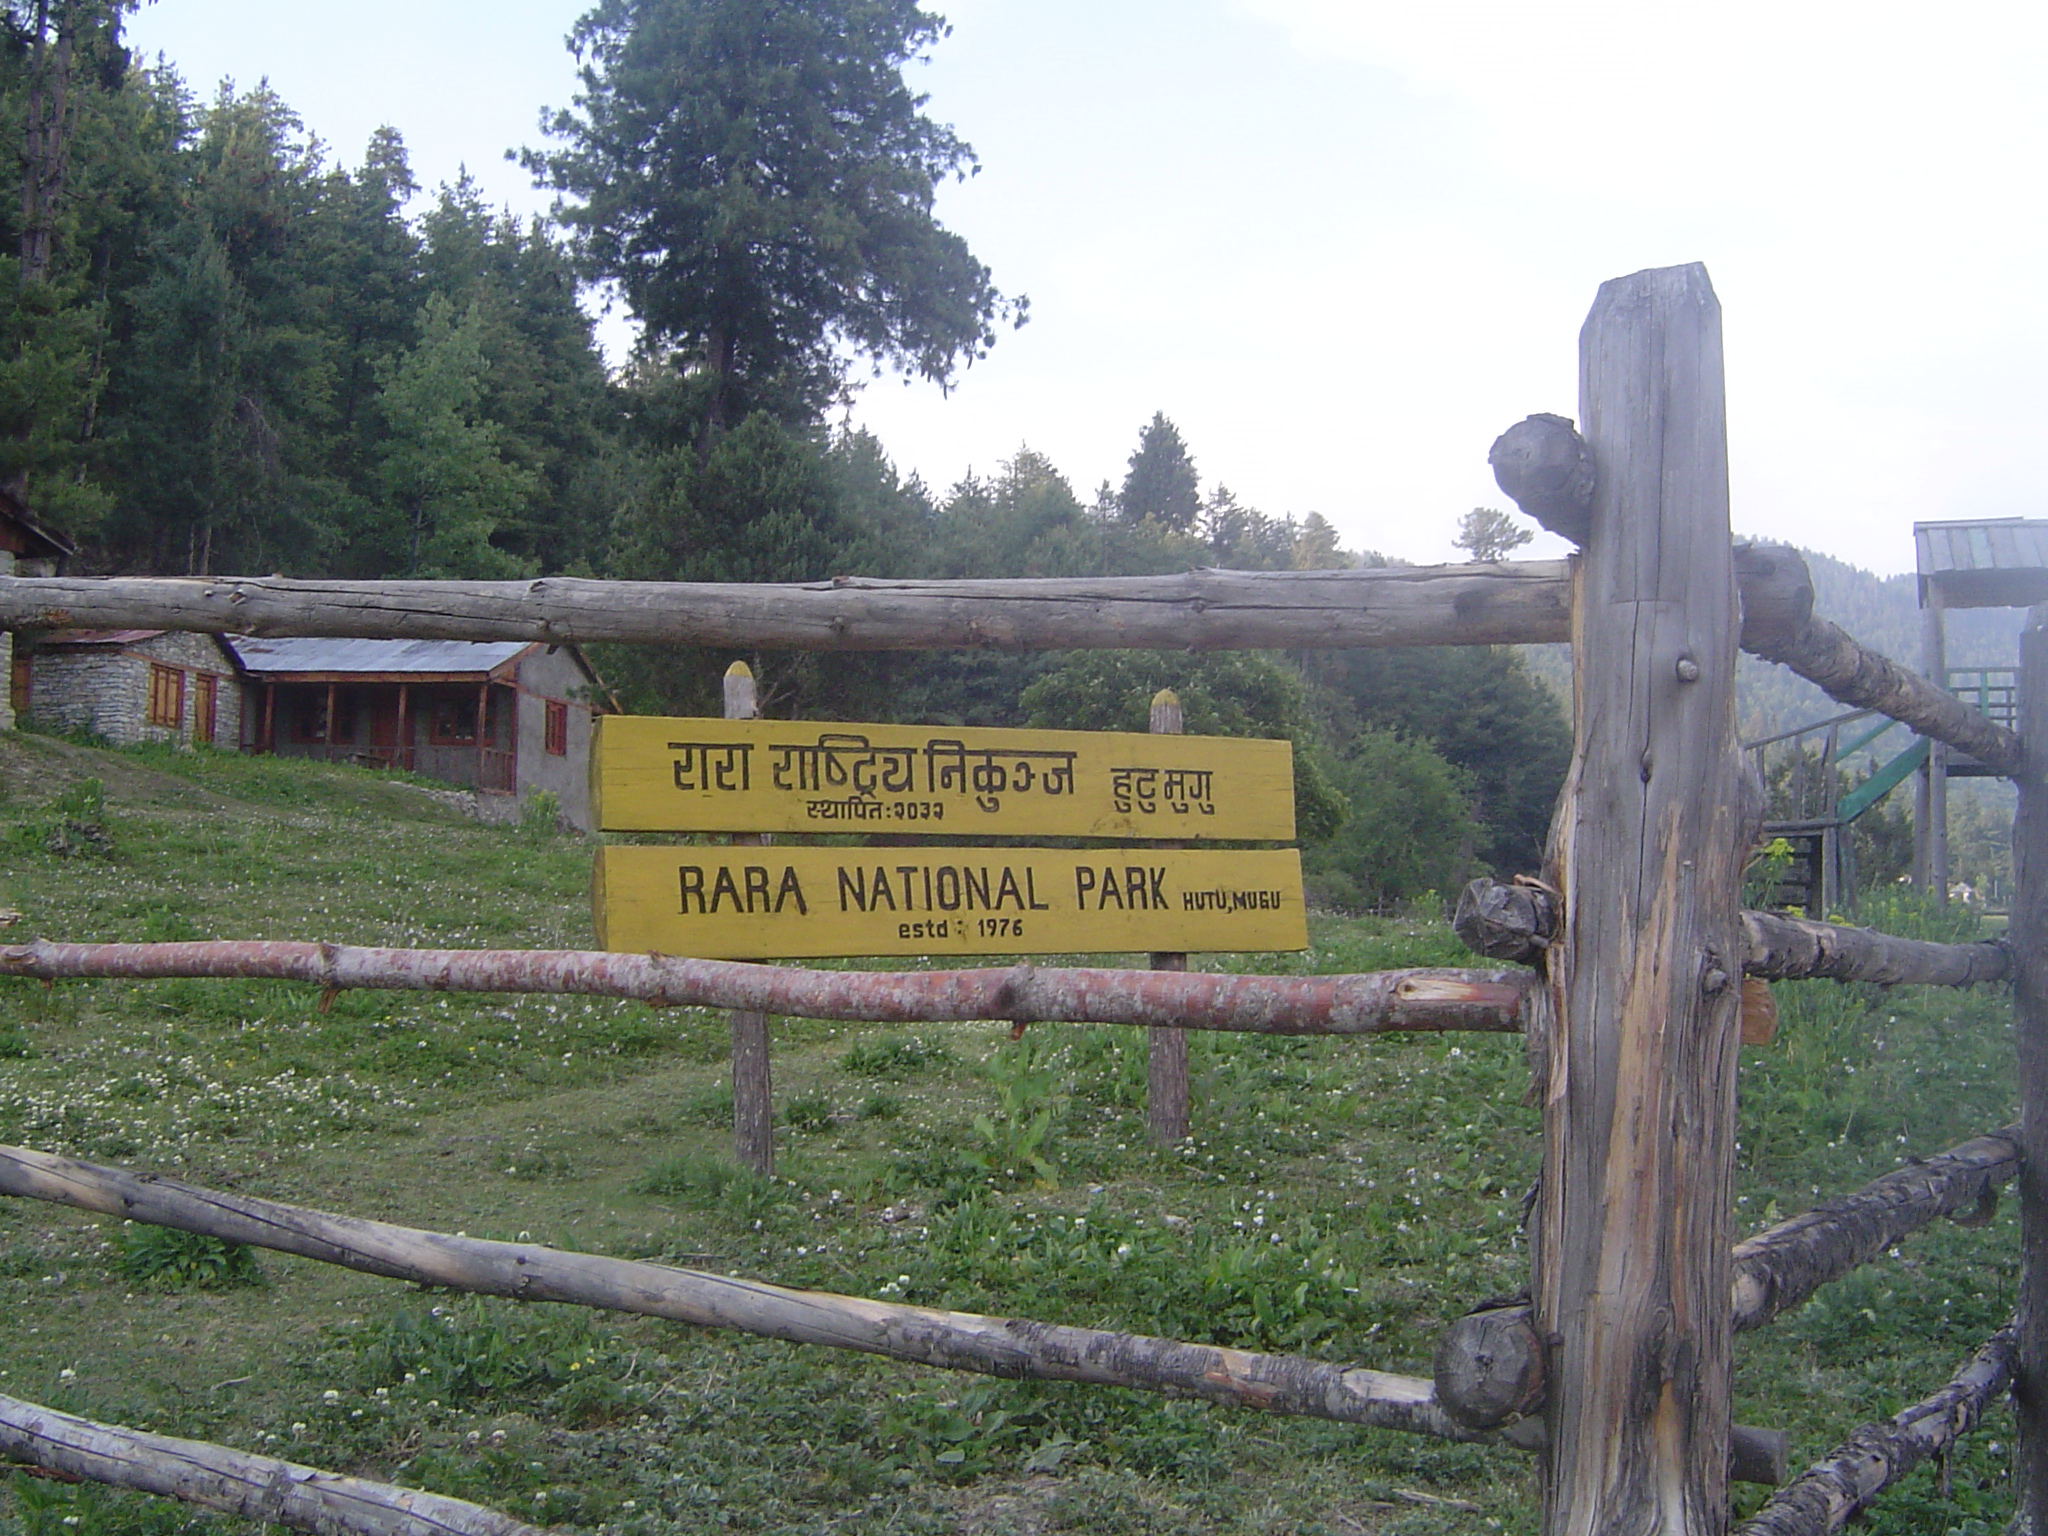 Rara National Park sign showing through a wooden fence with cabins and forest land in the landscape